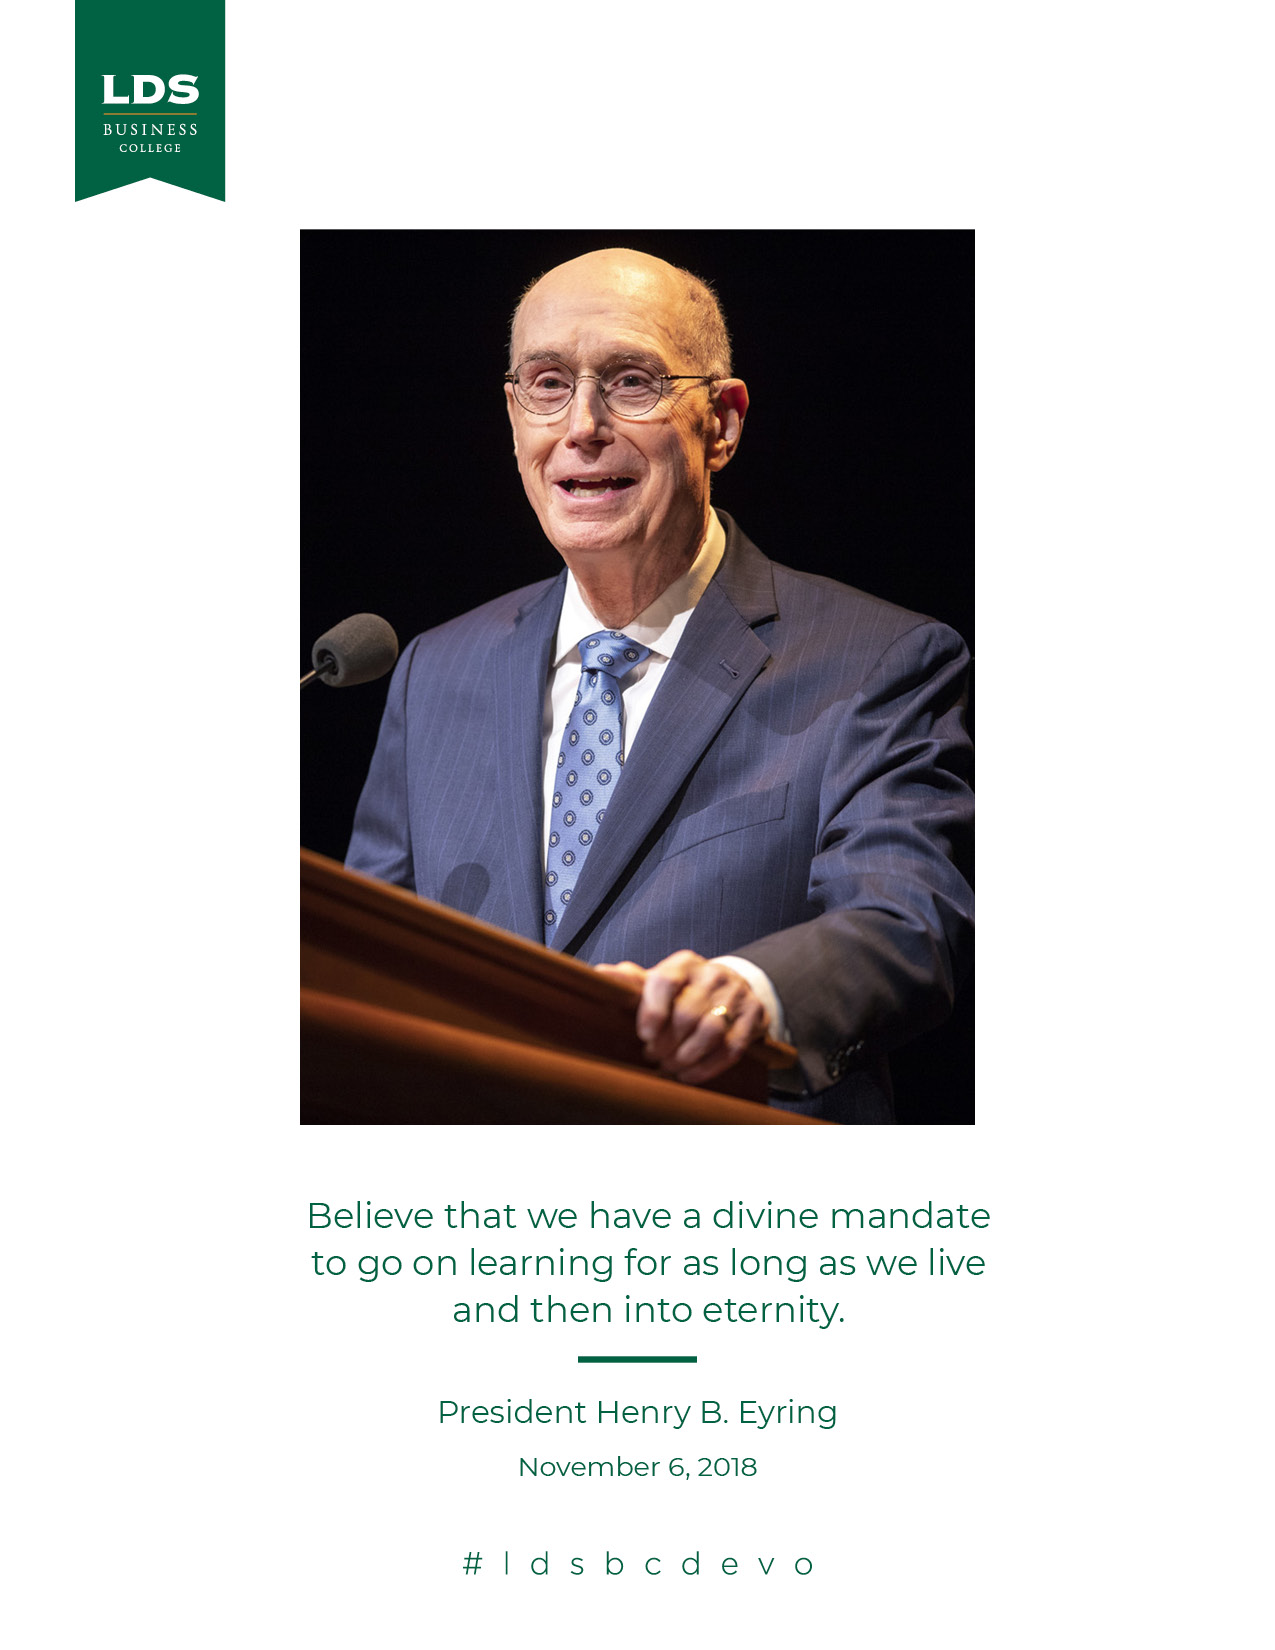 President Eyring 2018 Devotional Quote